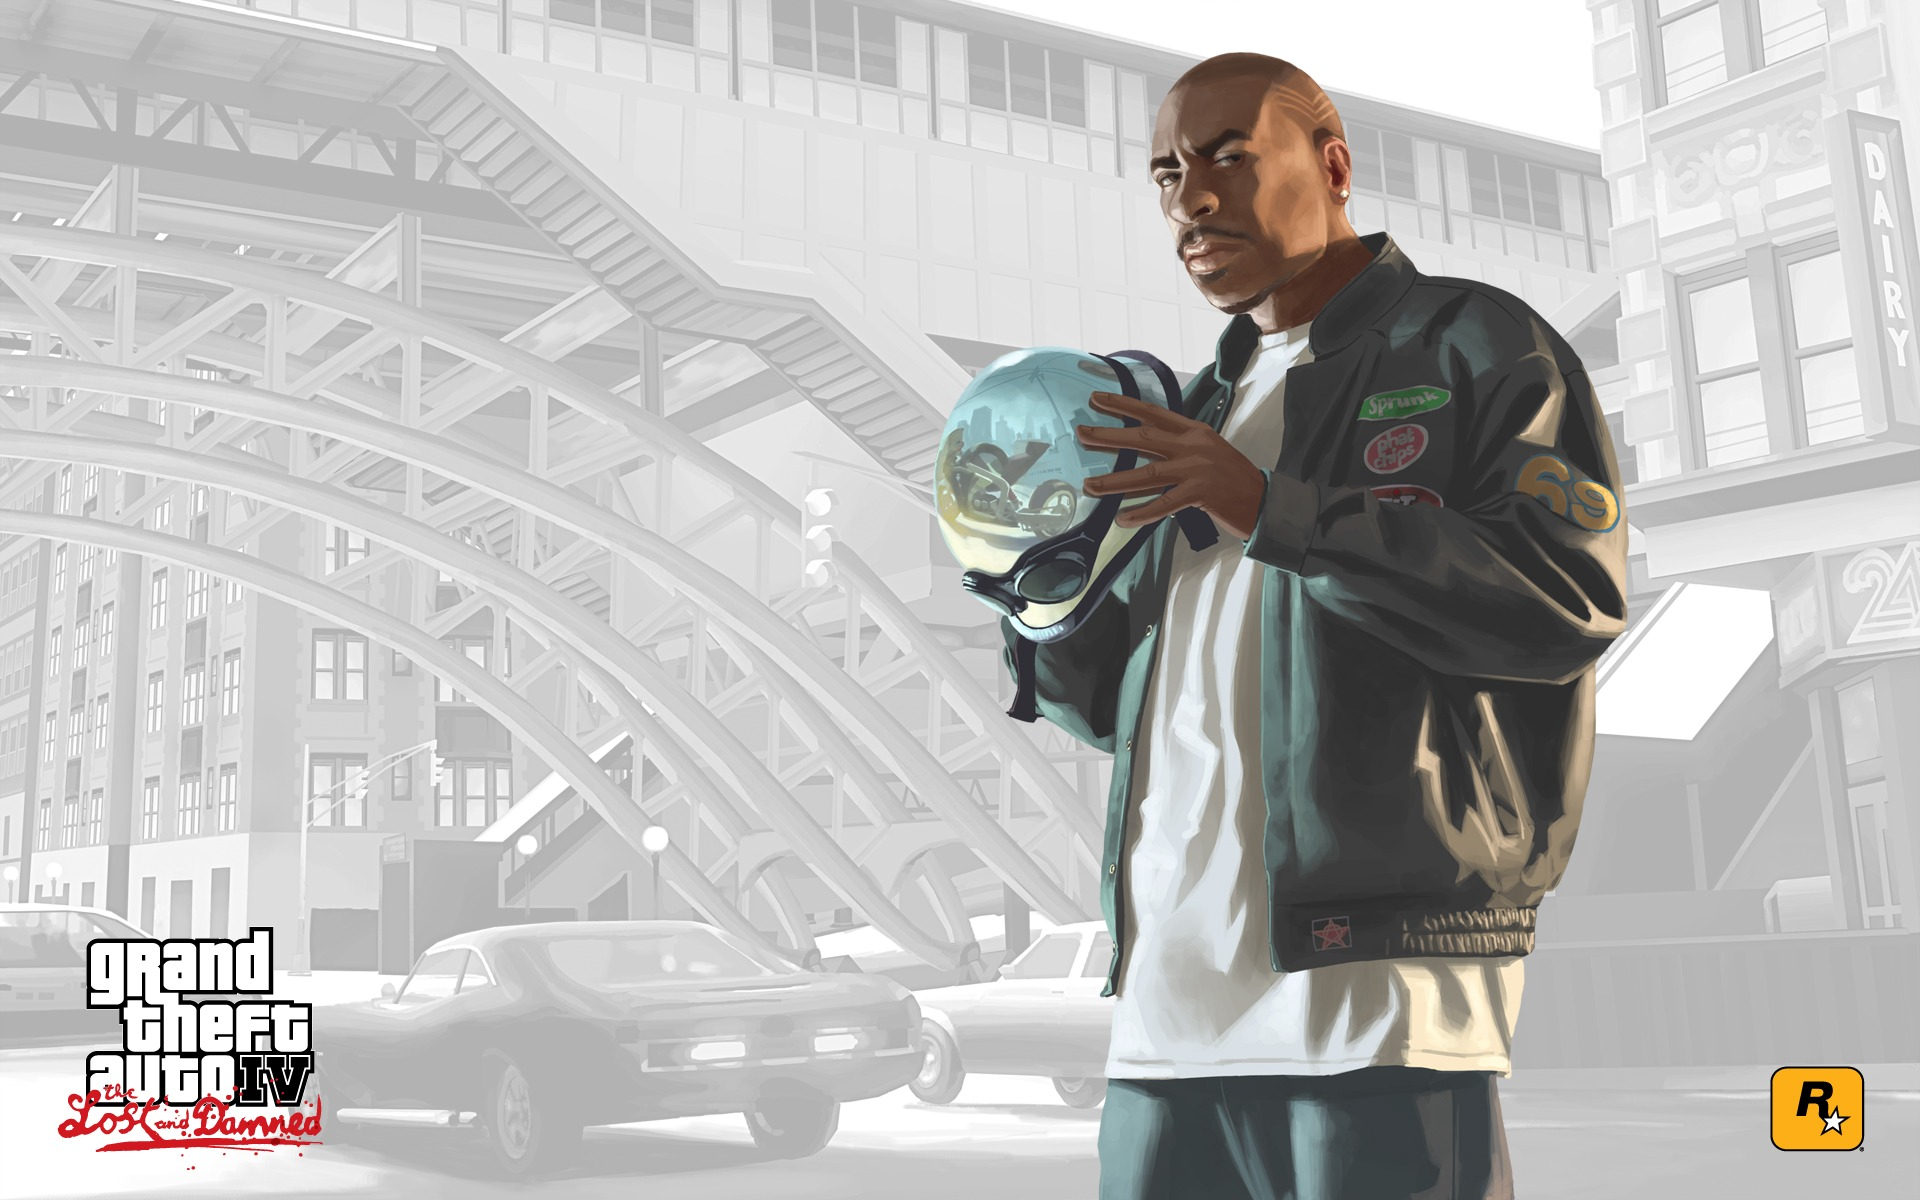 gta the lost and damned wallpaper gta iv games wallpaper 1920 1200 1920x1200